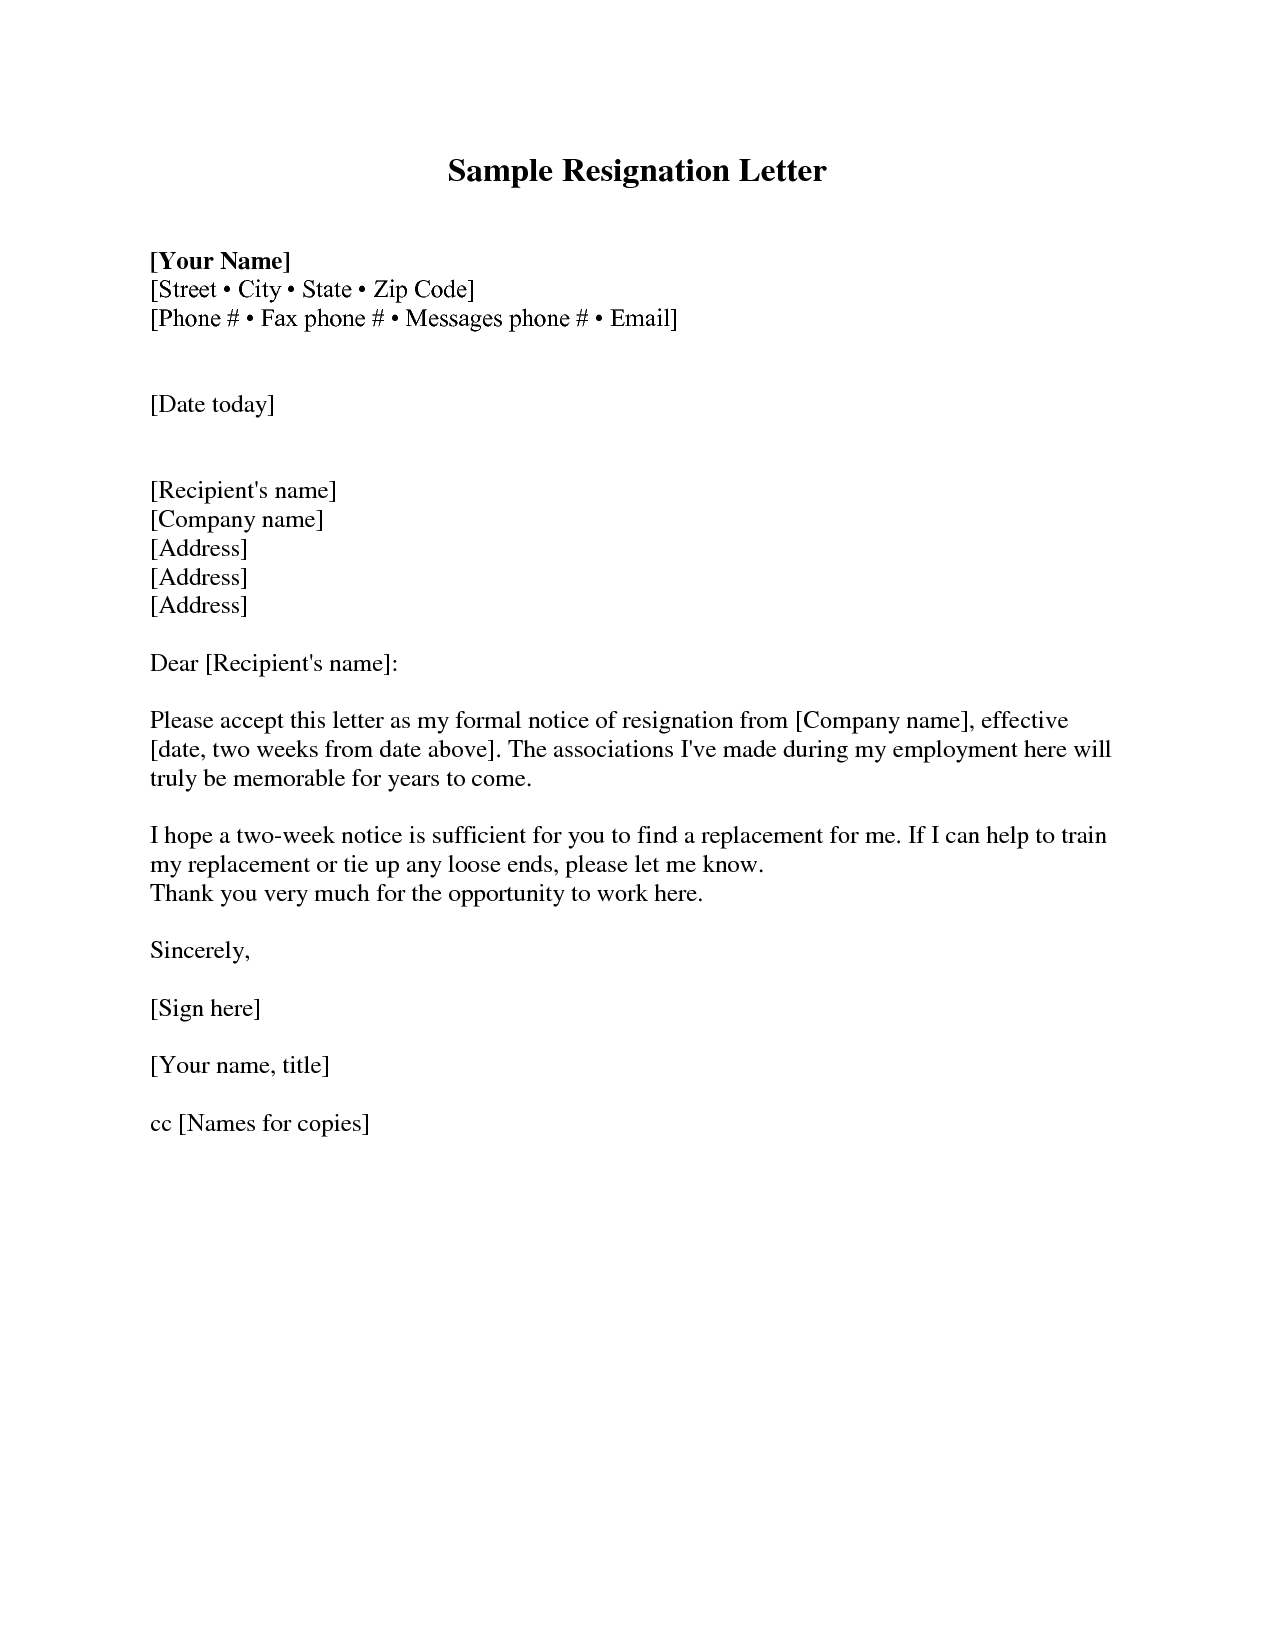 sample blank two weeks notice resignation letter. Resume Example. Resume CV Cover Letter